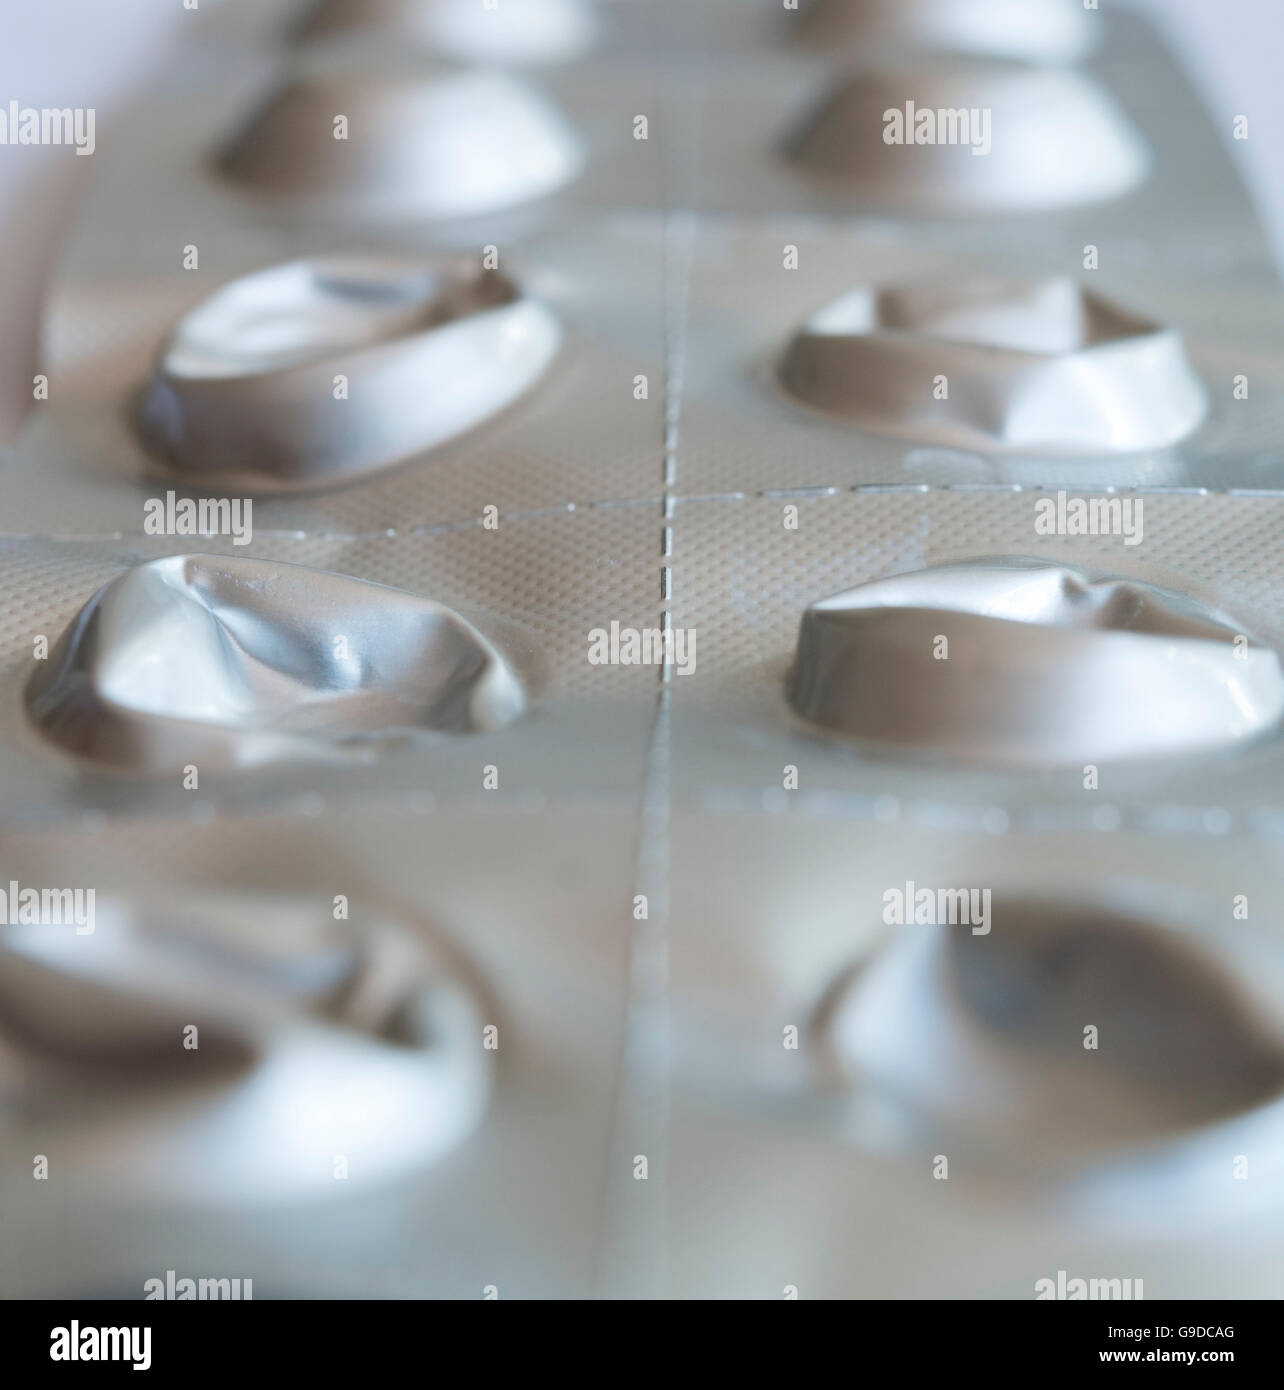 used foil blister packet for medicine tablets. - Stock Image